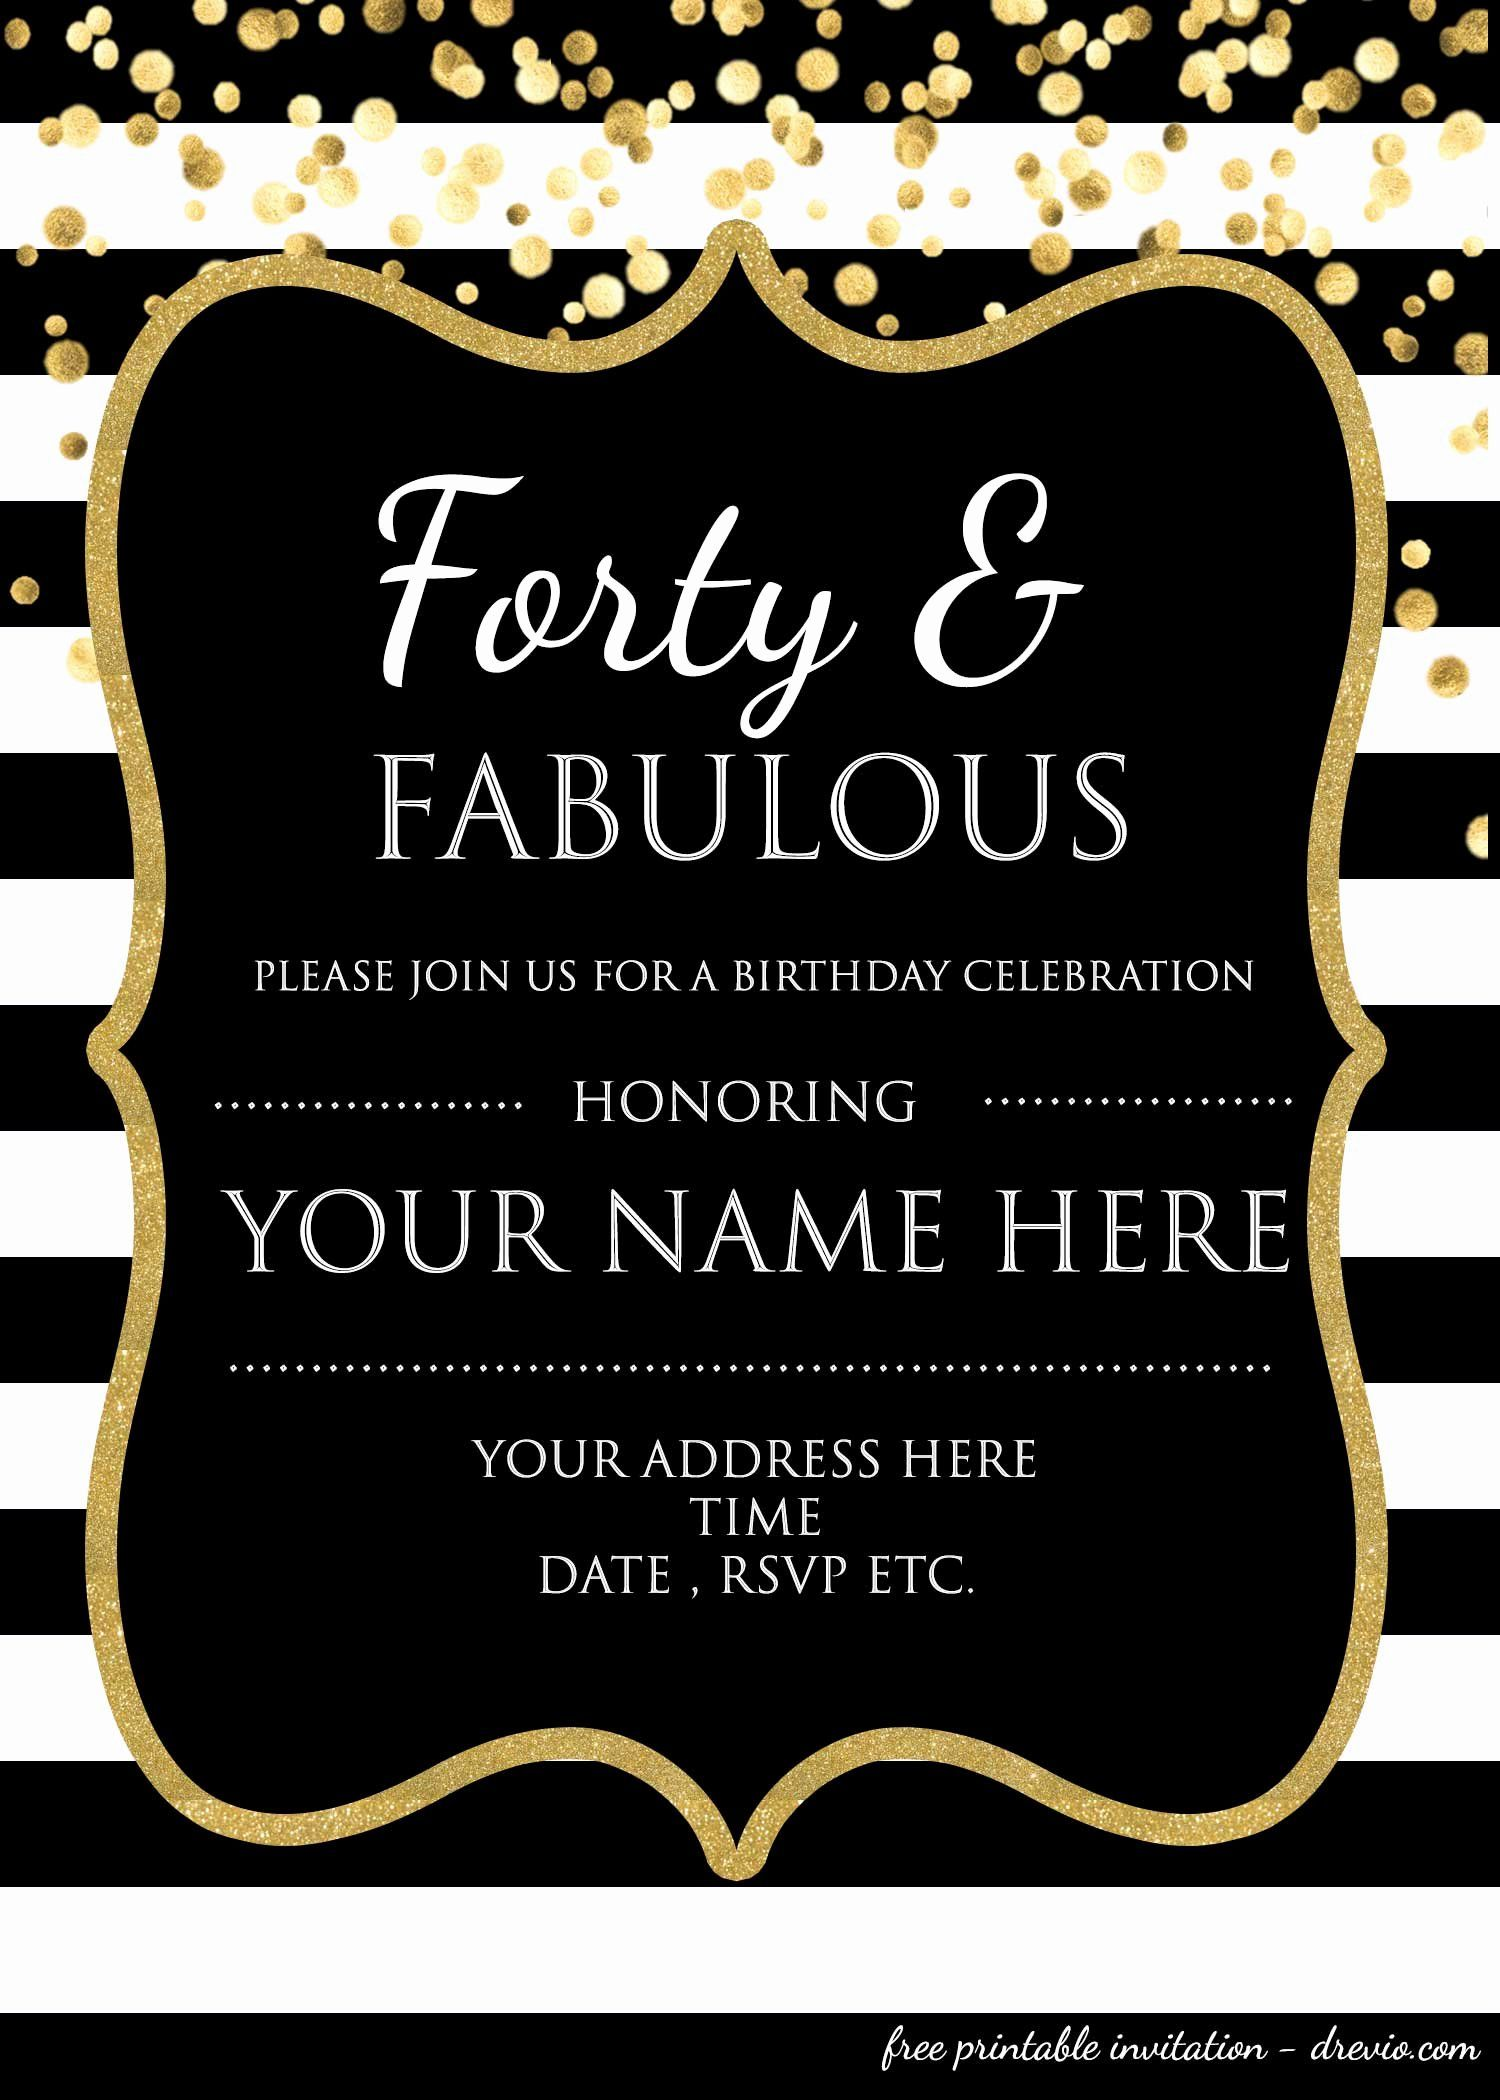 Free Free Printable 50th Birthday Invitations 50th Birthday Invitations 40th Birthday Party Invites 50th Anniversary Invitations